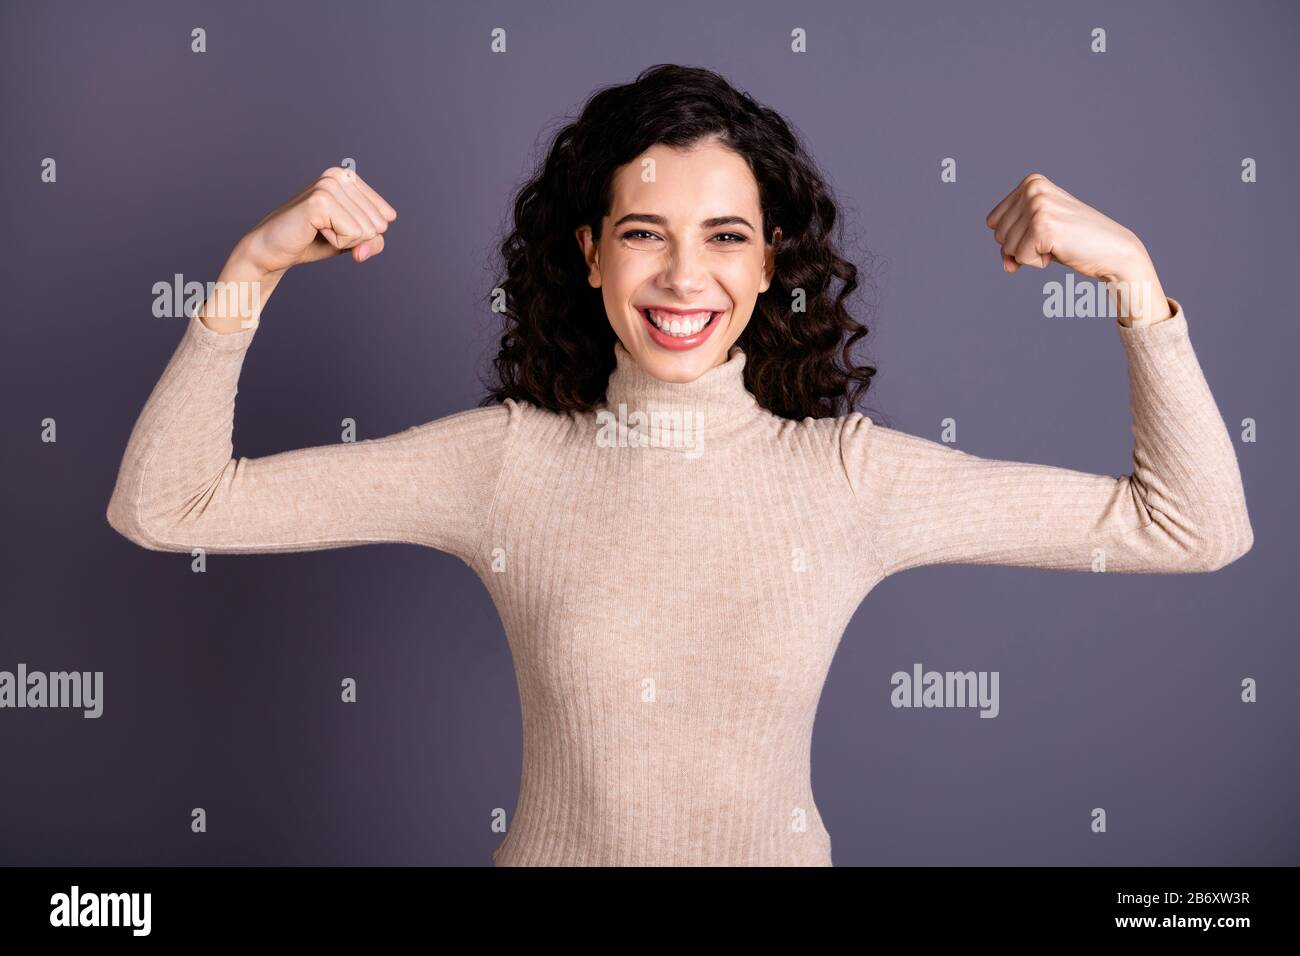 Close up photo amazing attractive she her lady showing presenting own cool big muscles I don't need hero girls power strong concept idea wear casual Stock Photo